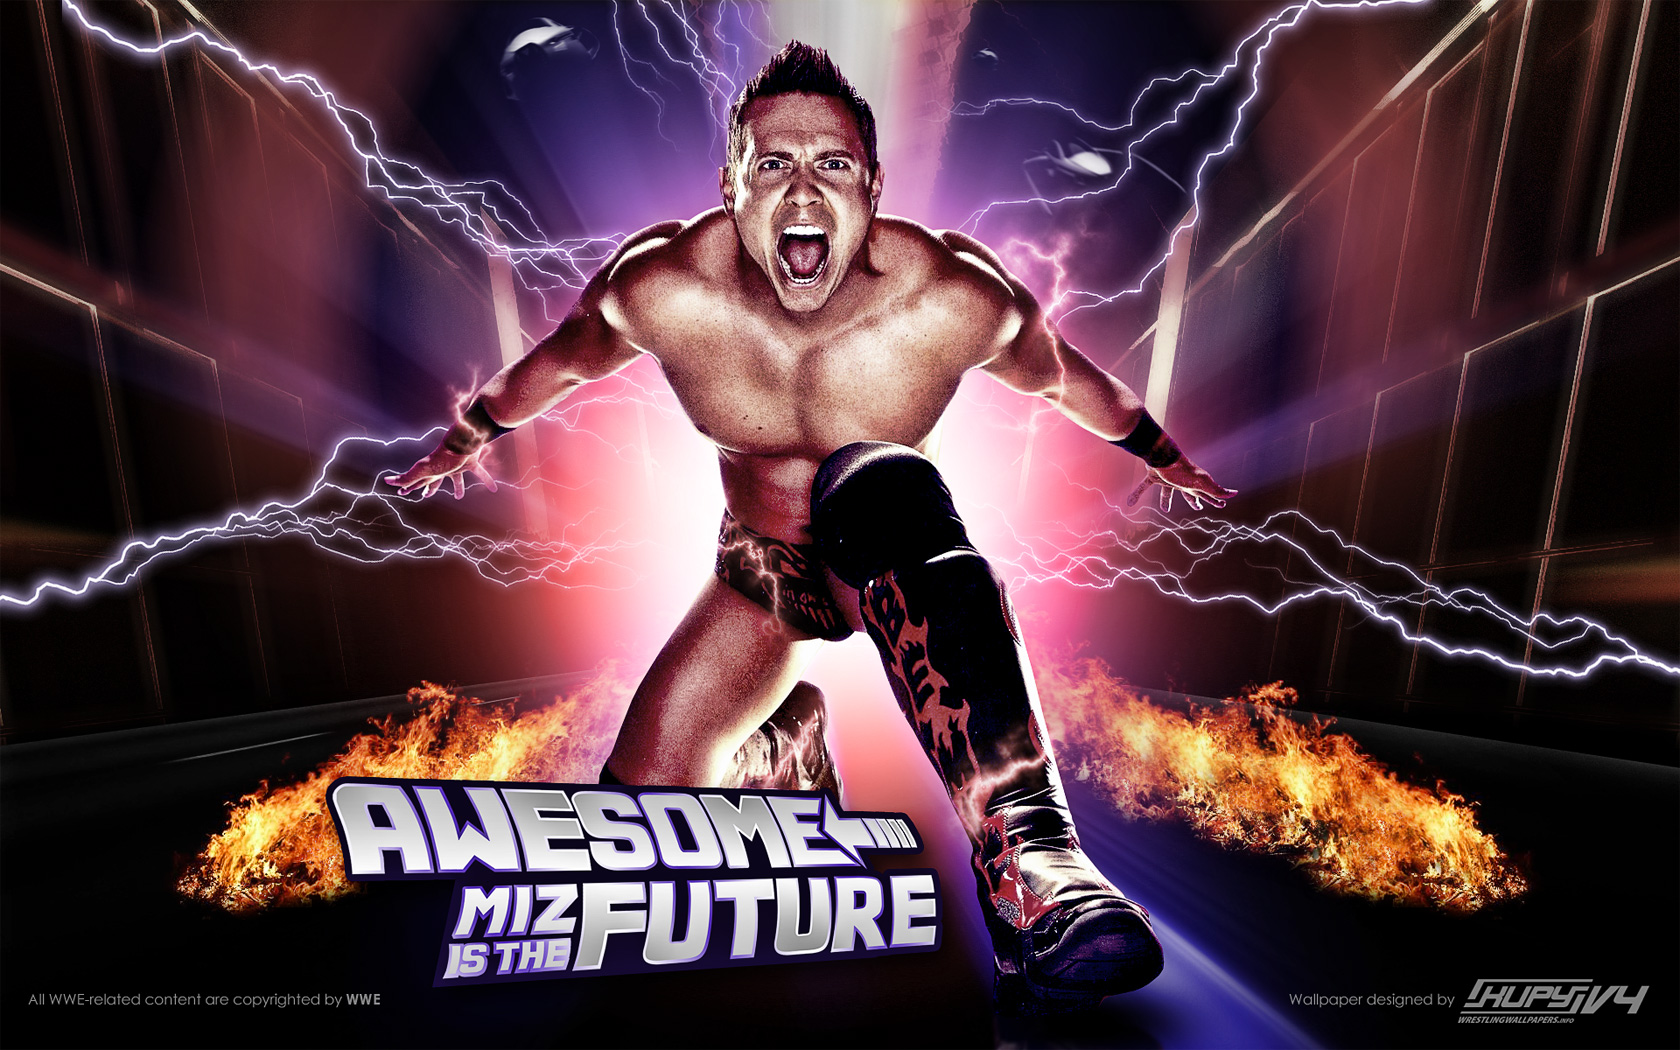 Kupy Wrestling Wallpapers The Latest Source For Your Wwe Wrestling Wallpaper Needs Mobile Hd And 4k Resolutions Available Blog Archive New The Miz Is The Future Wallpaper Kupy Wrestling